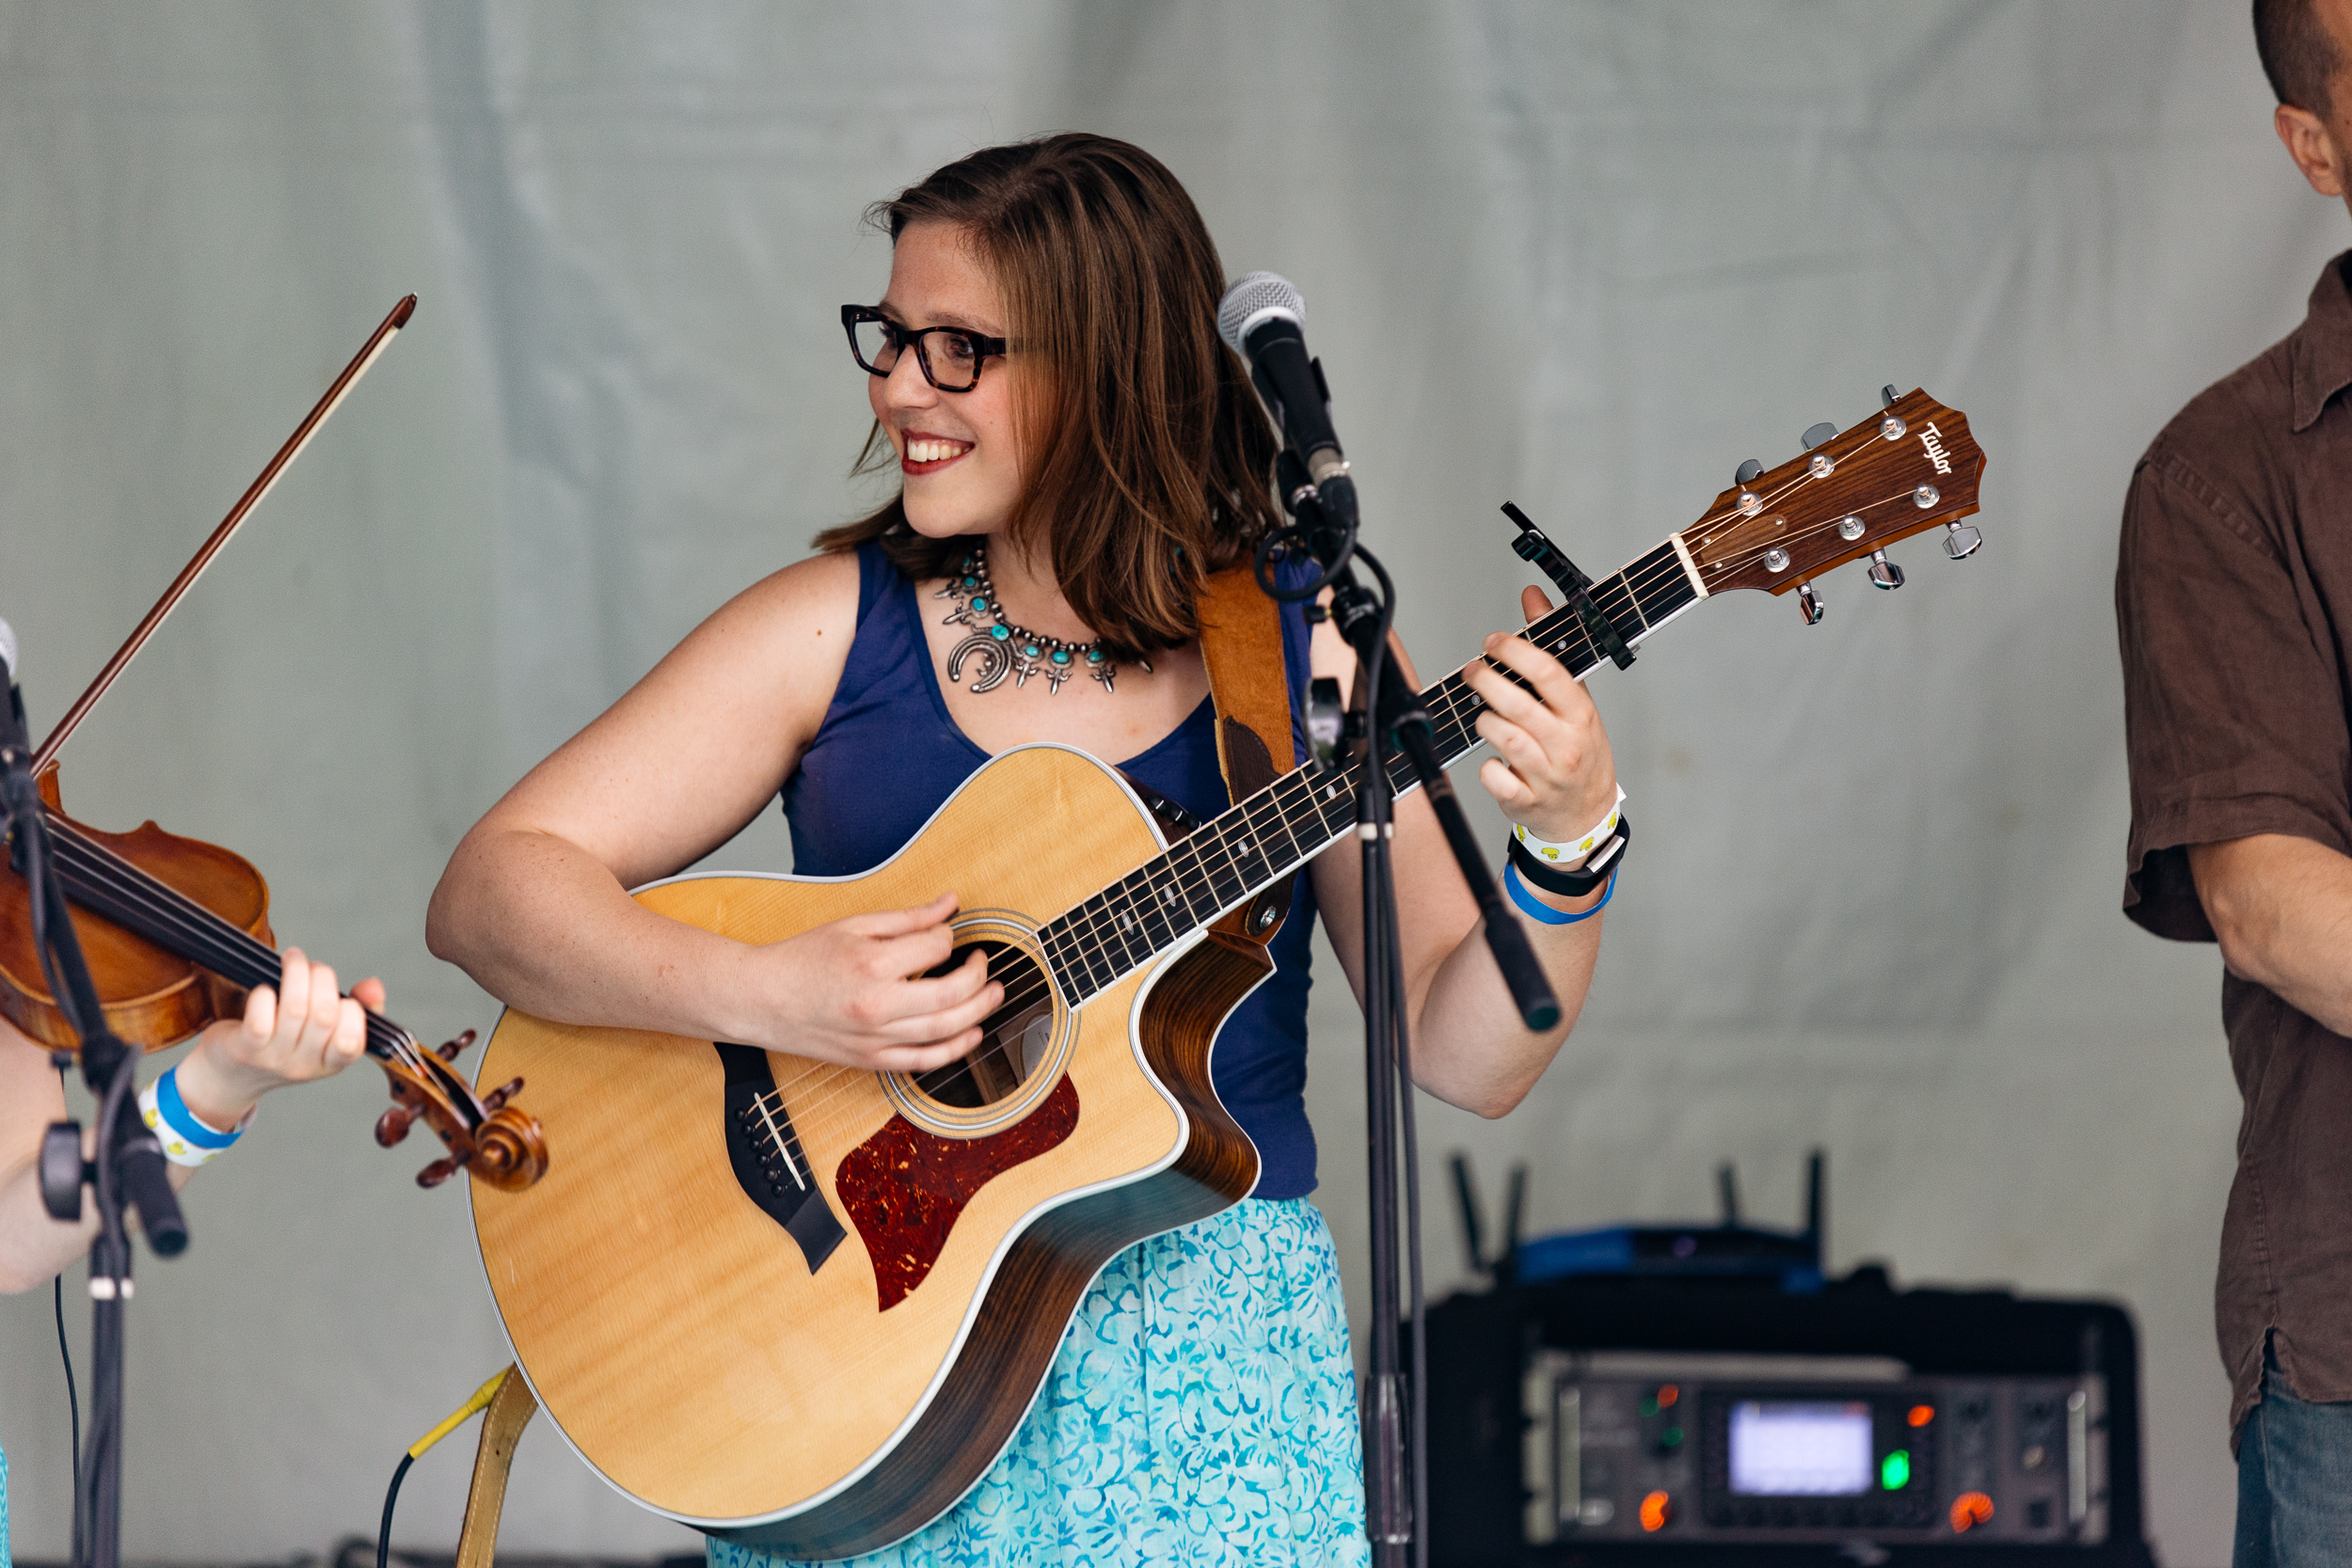 Hannah Jaye & the Hideaways at Kingman Island Bluegrass & Folk Festival (Photo by Mauricio Castro)